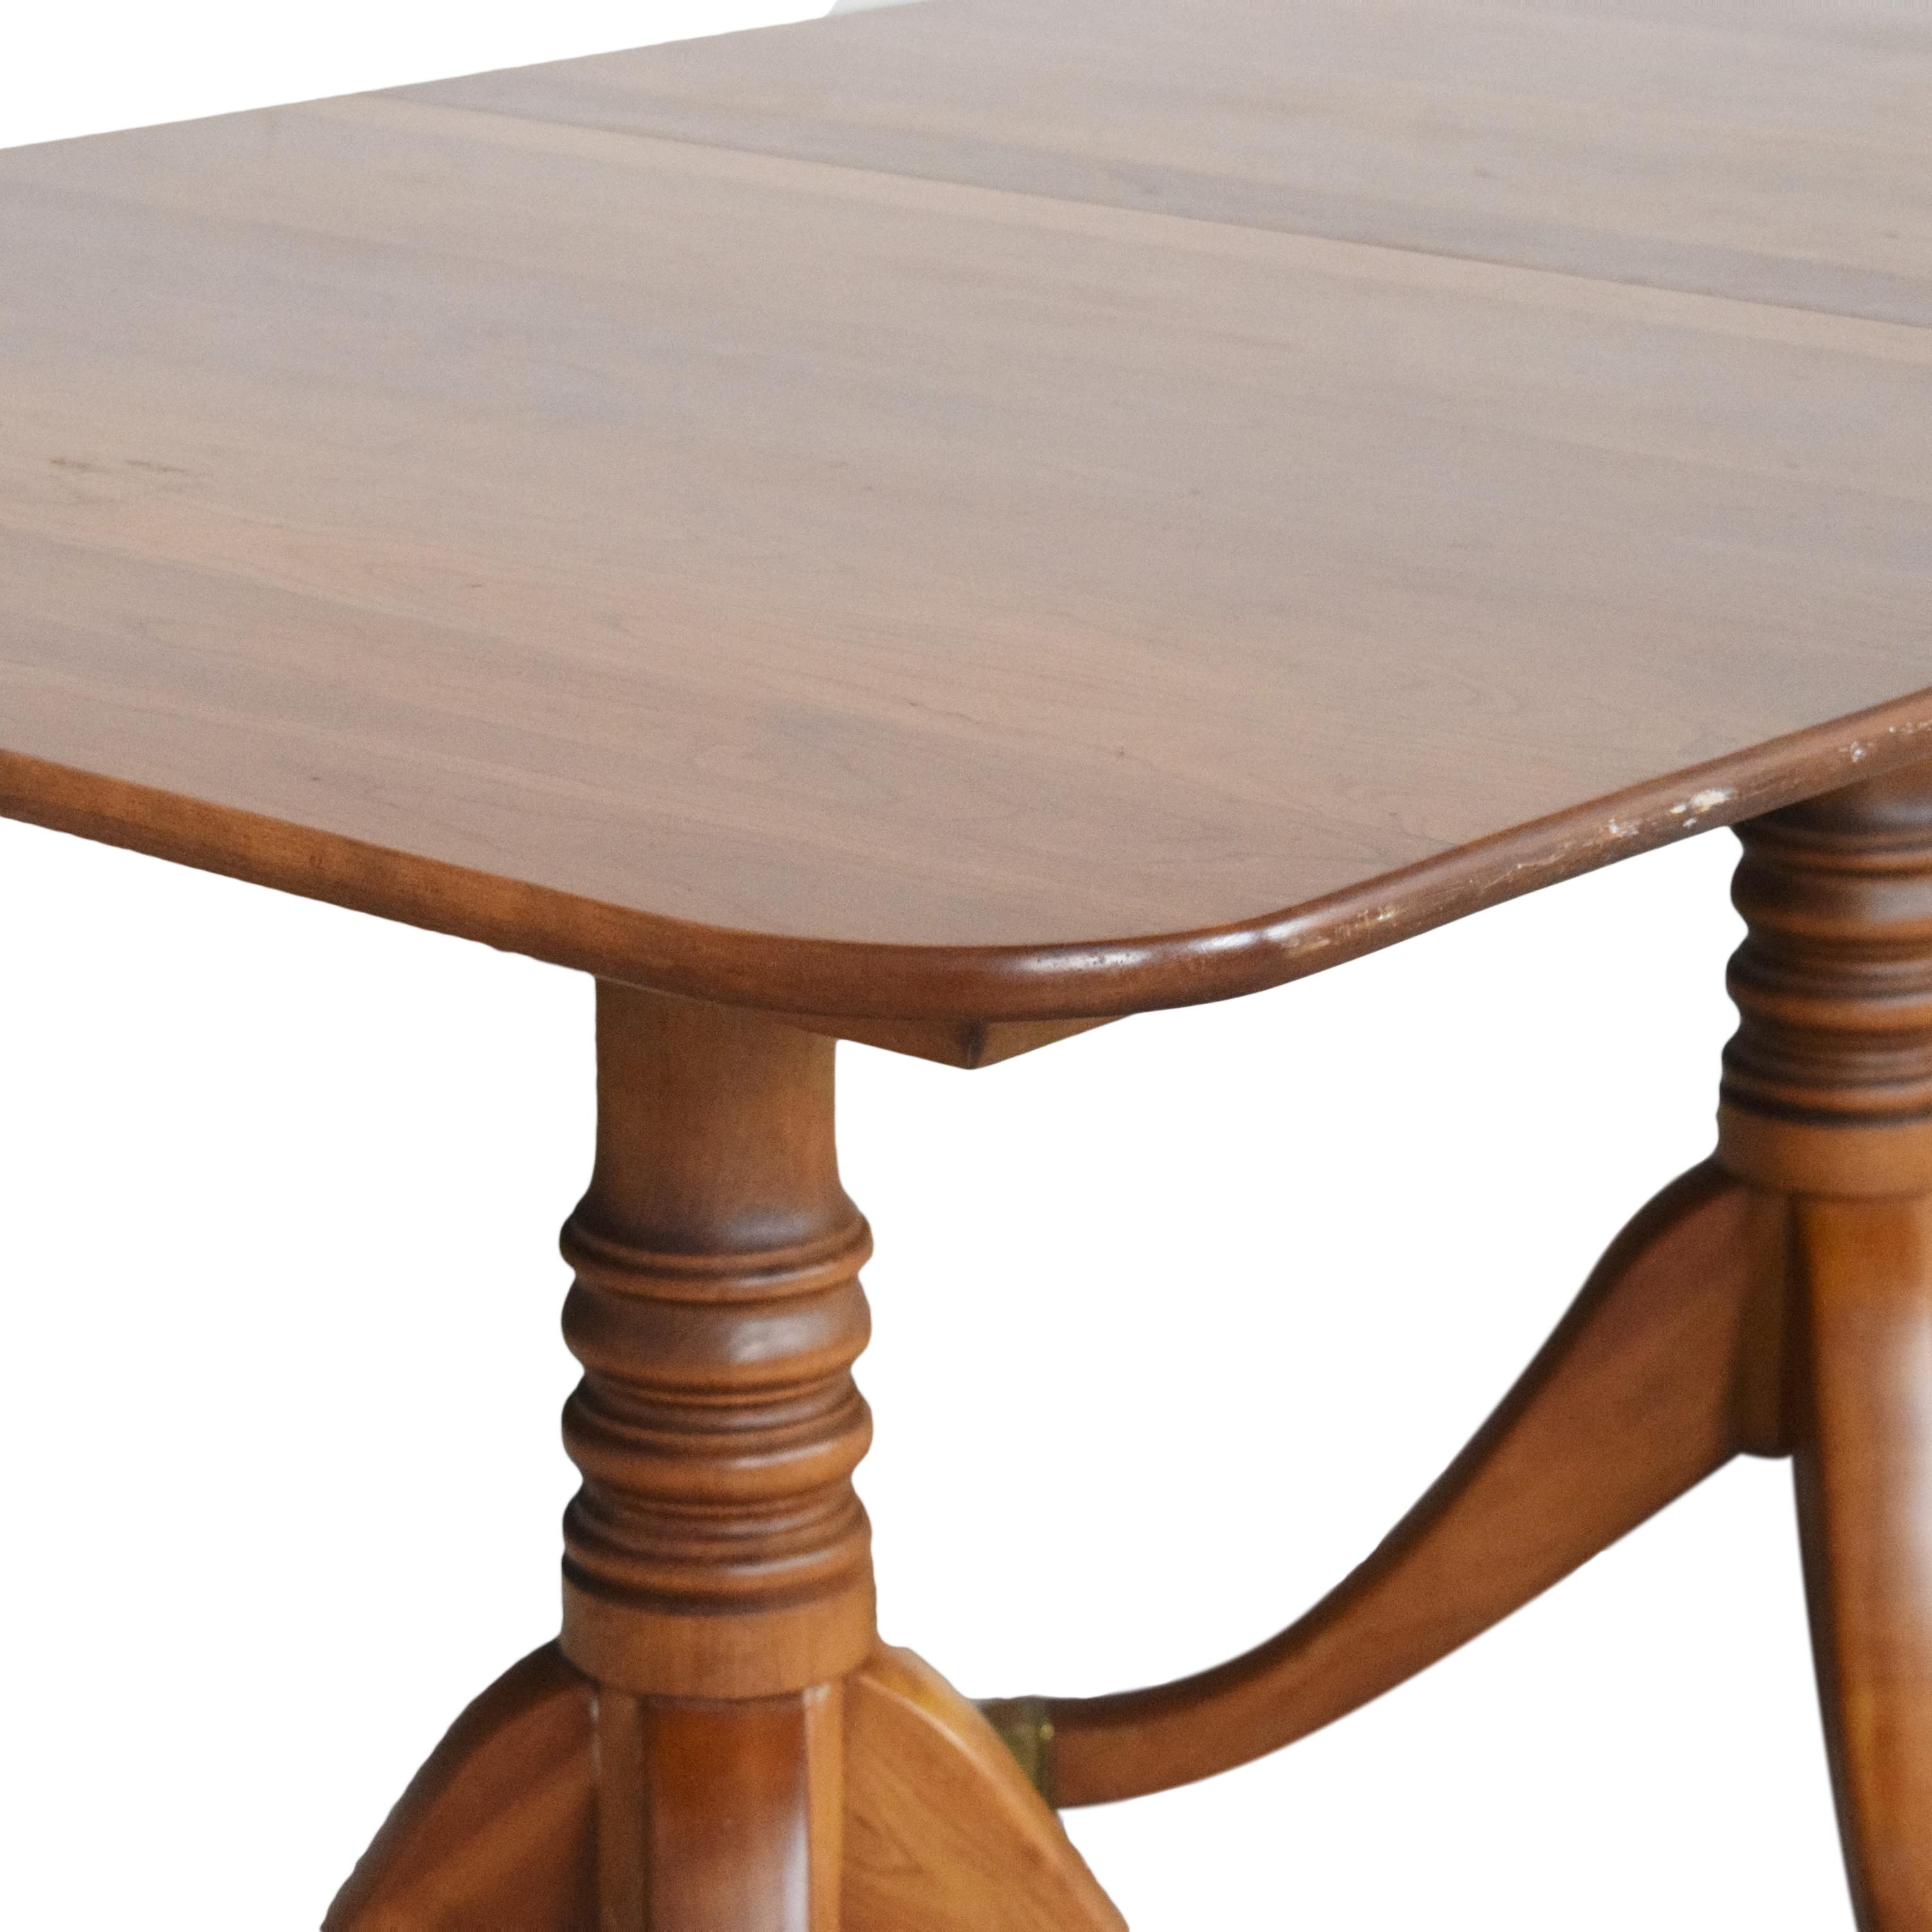 72 Off Stickley Furniture Stickley Furniture Double Pedestal Extendable Dining Table Tables